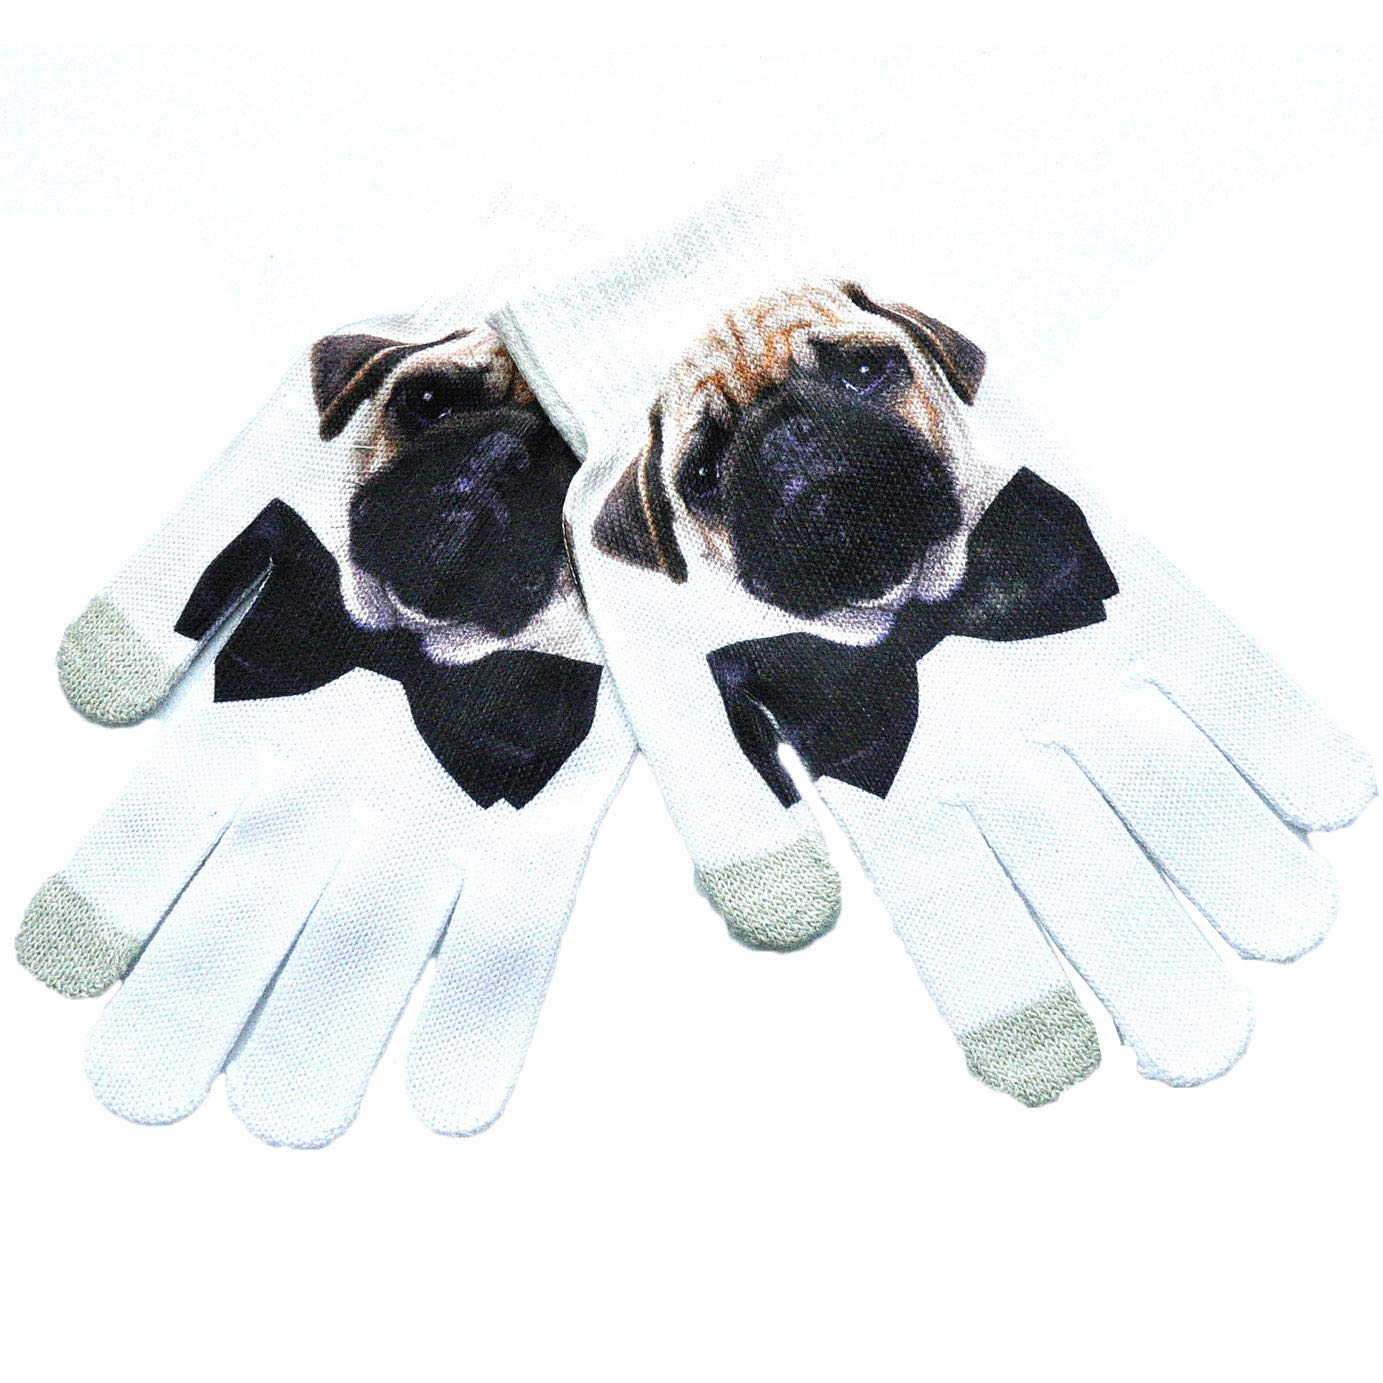 Adluts Winter Touch Screen Gloves 3D Realistic Effect Watermark Landscape Animal Full Finger Gloves Mittens